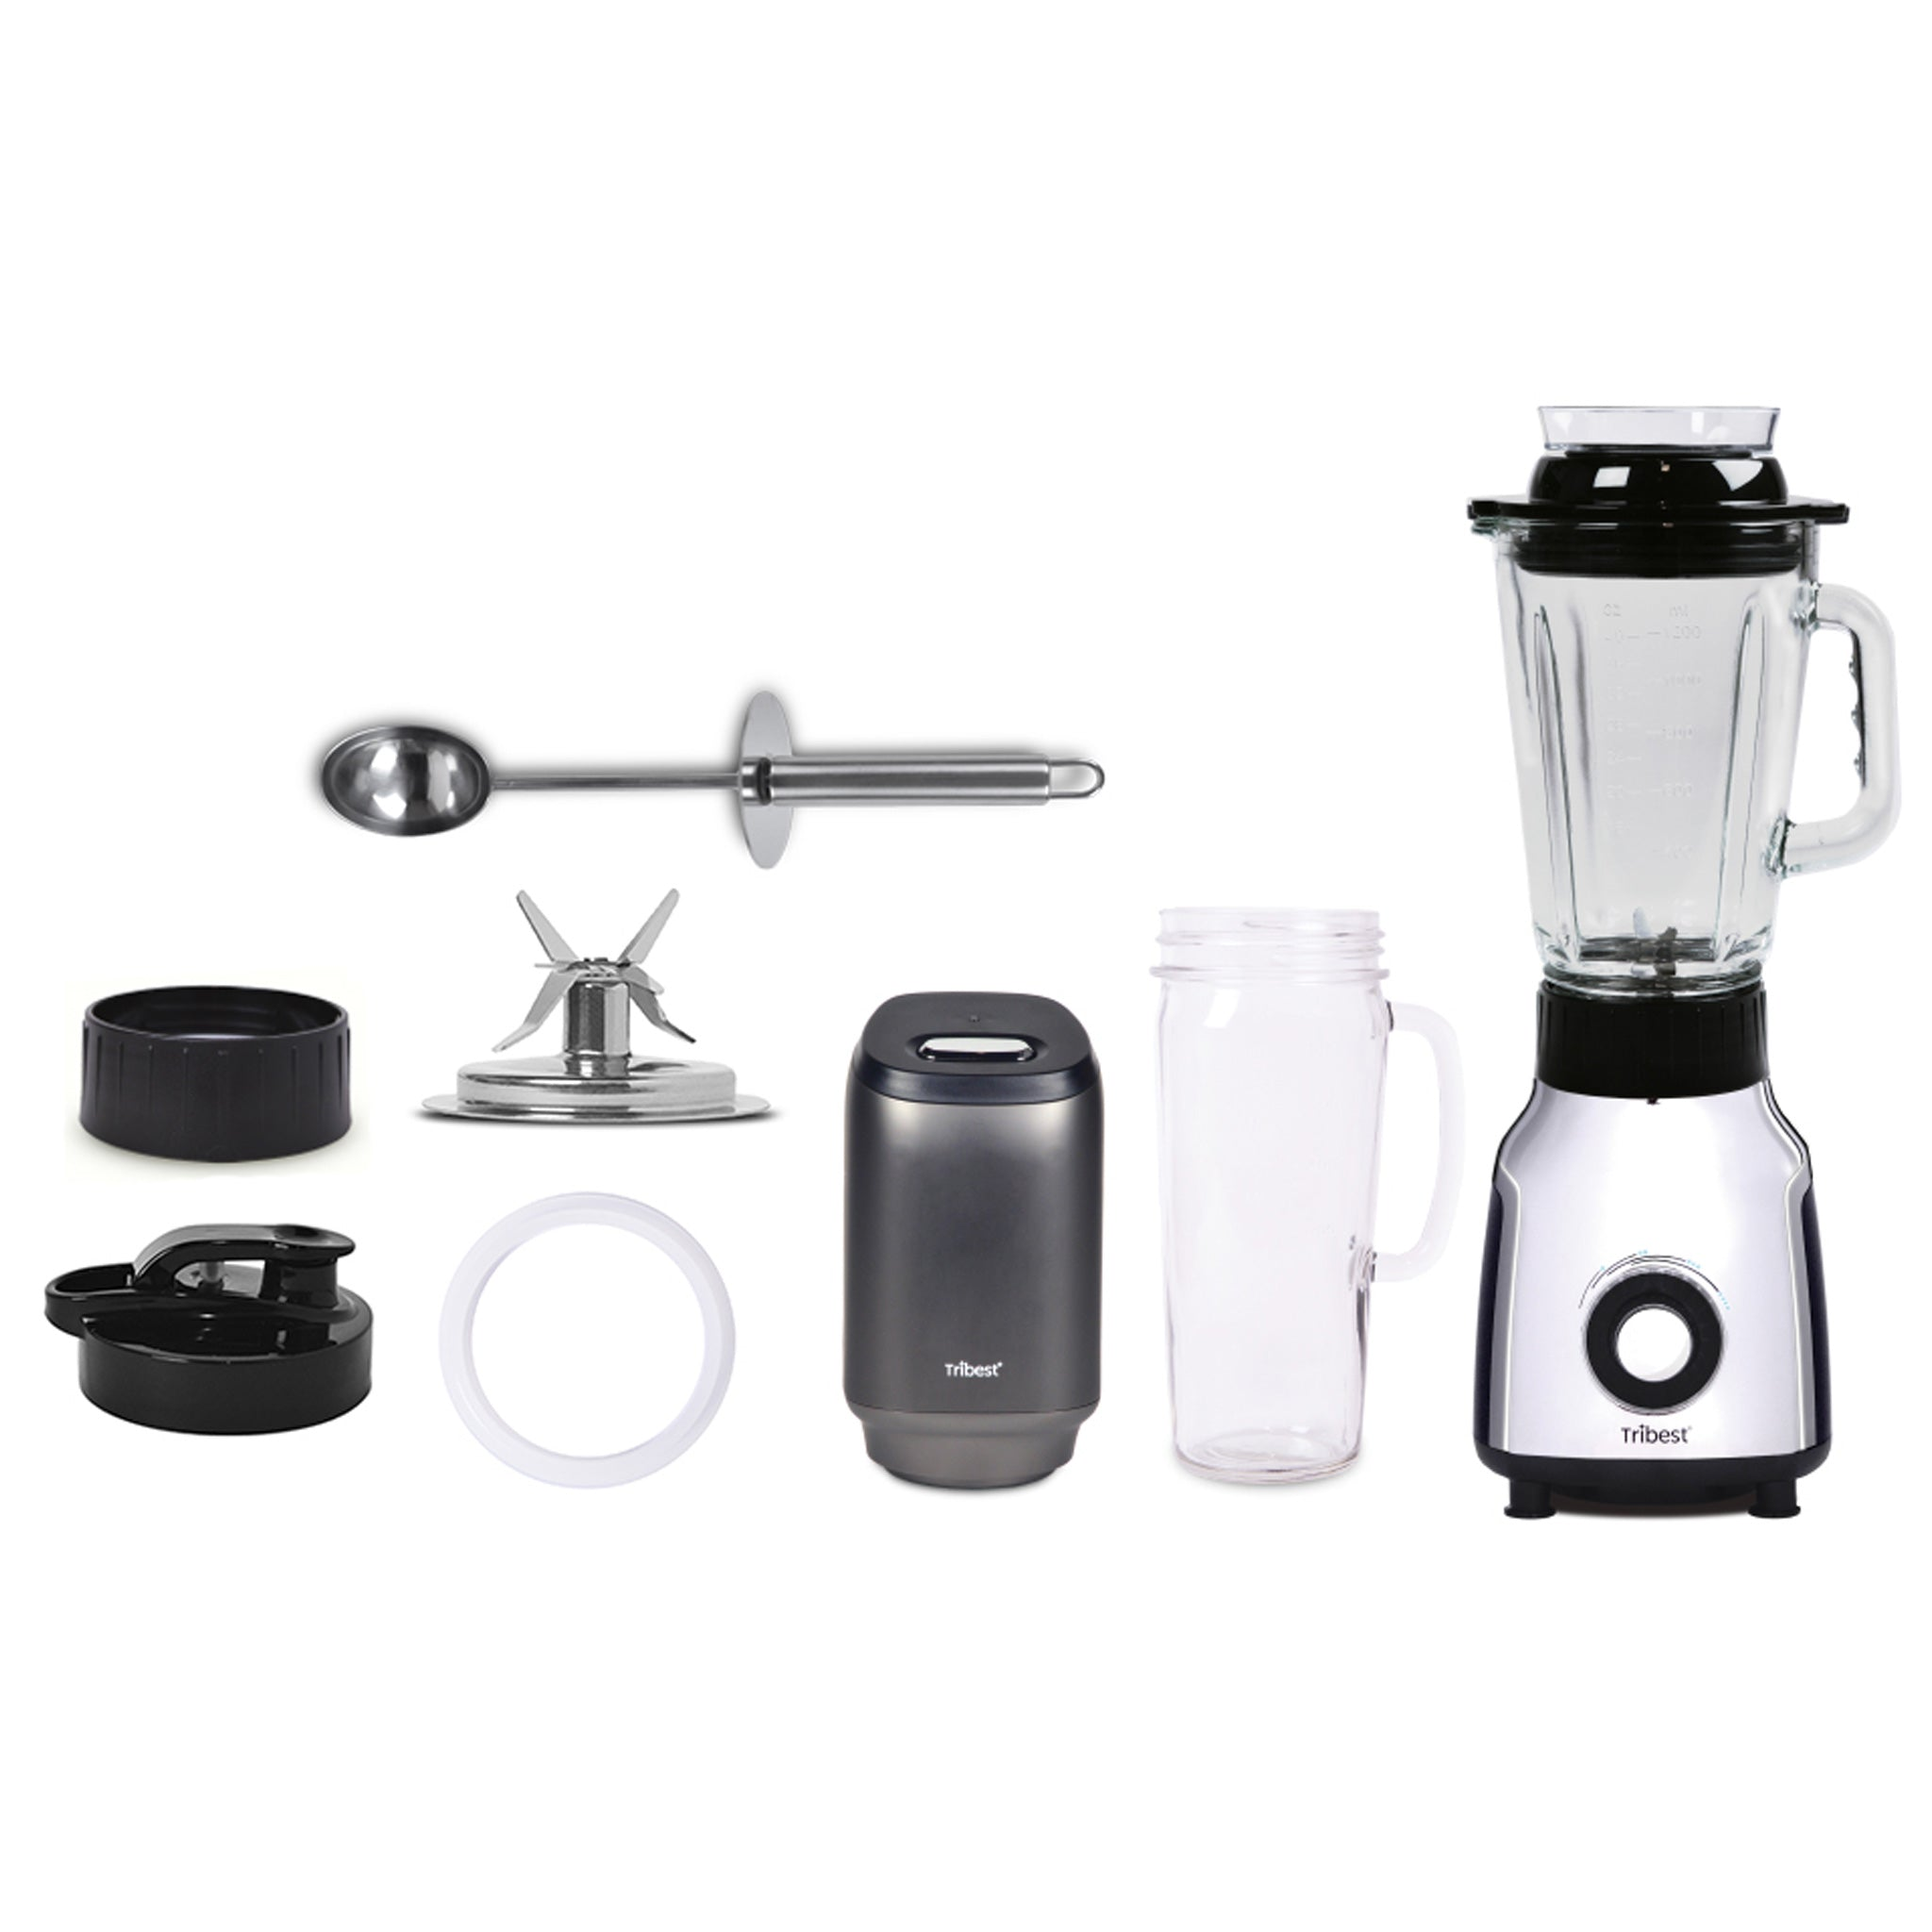 Glass Personal Blender Single-Serving Vacuum Blender PBG-5001-A - Parts - Tribest